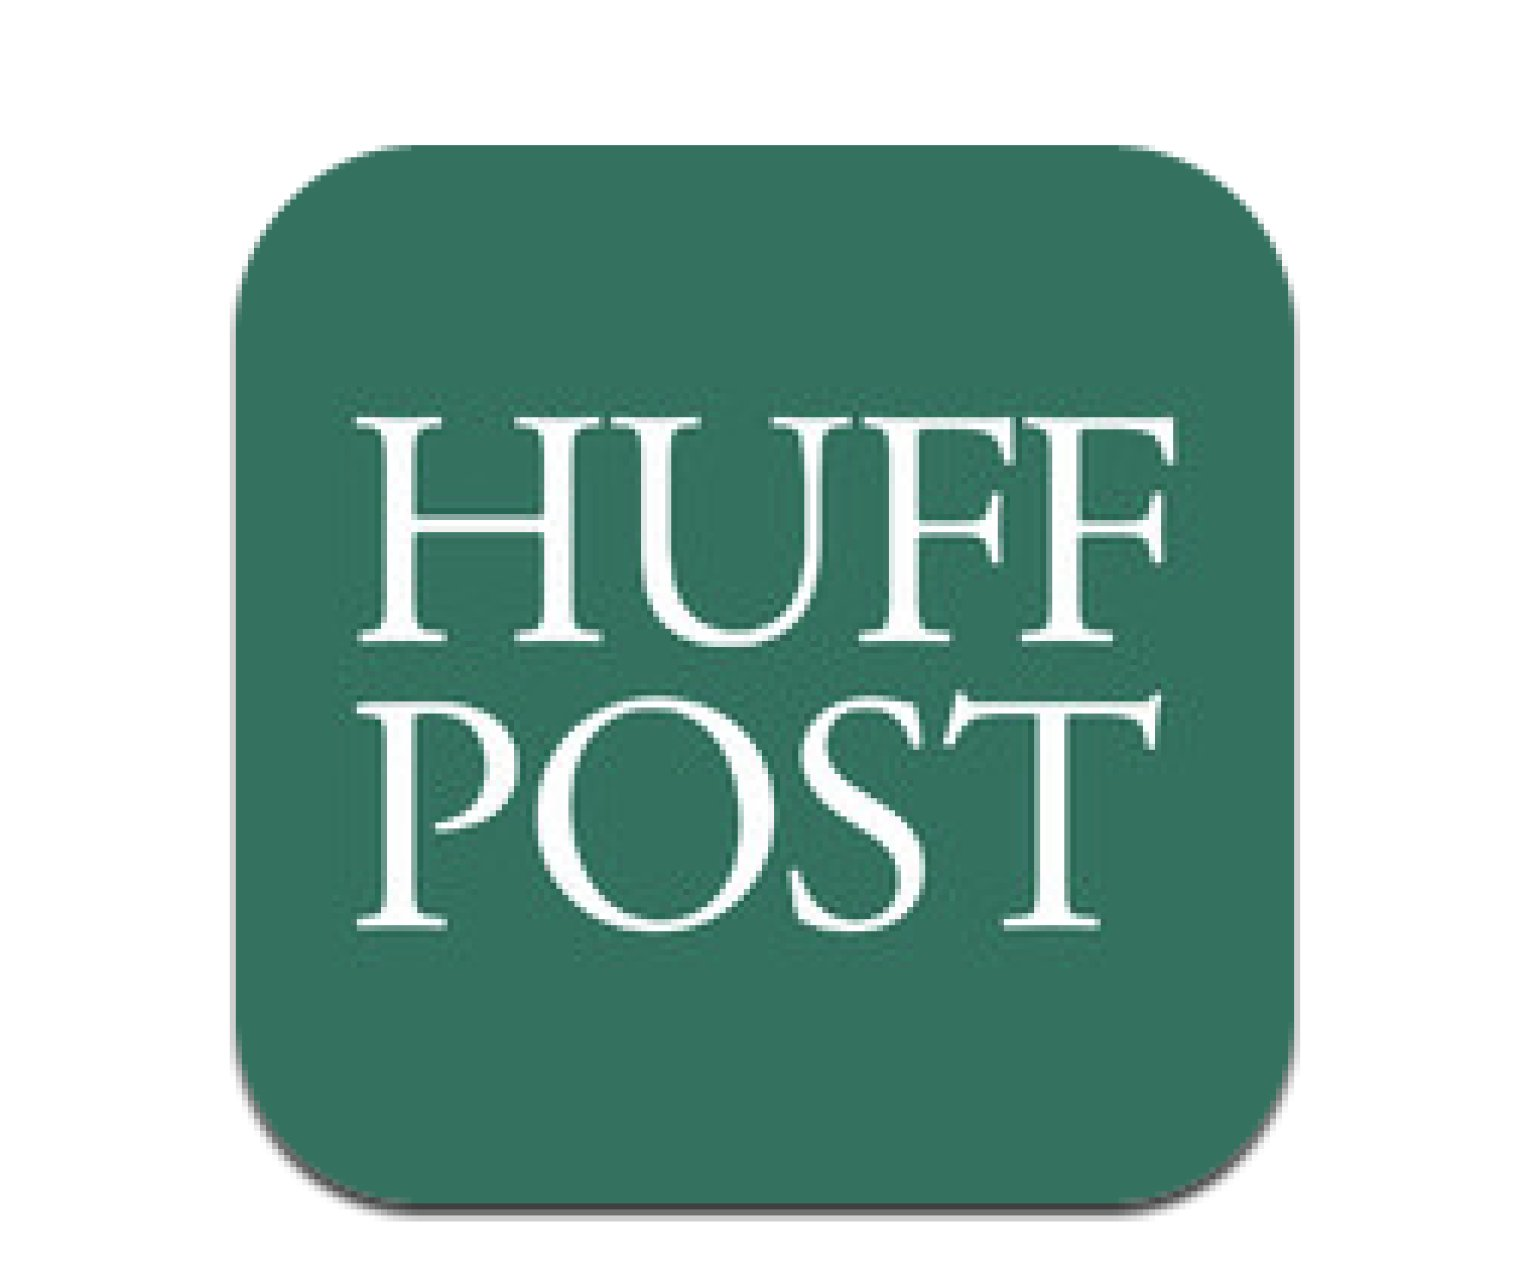 Huffington post dating profile - Warsaw Local